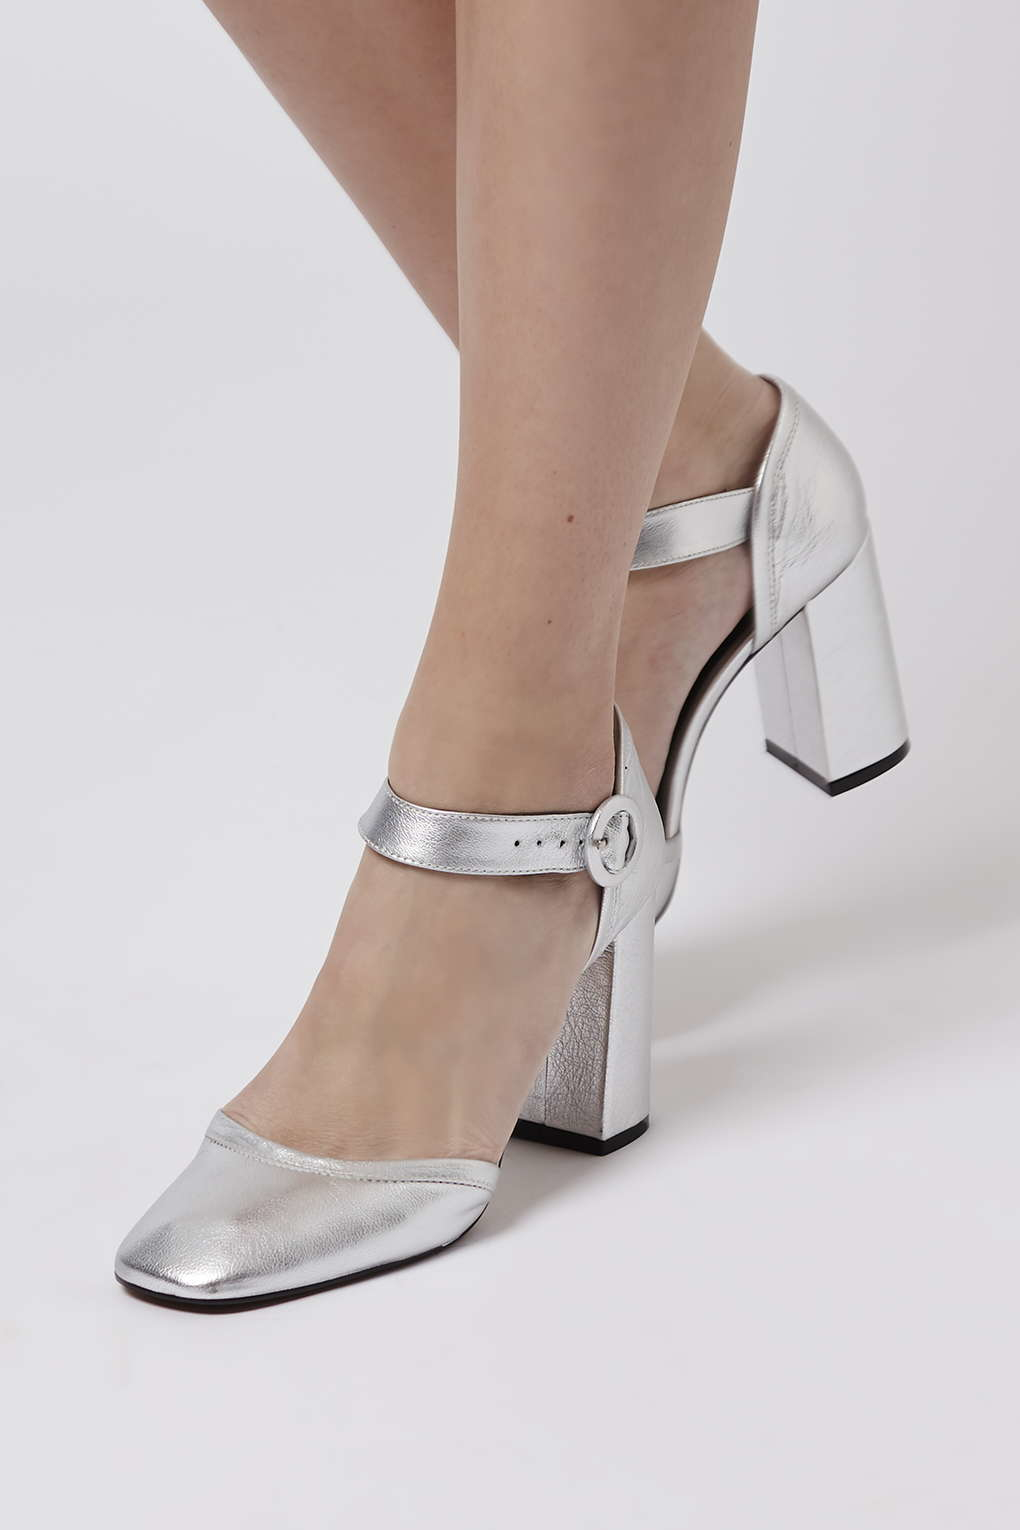 bd923a09ef92 Lyst - TOPSHOP Ginger Mary Jane Shoes in Metallic